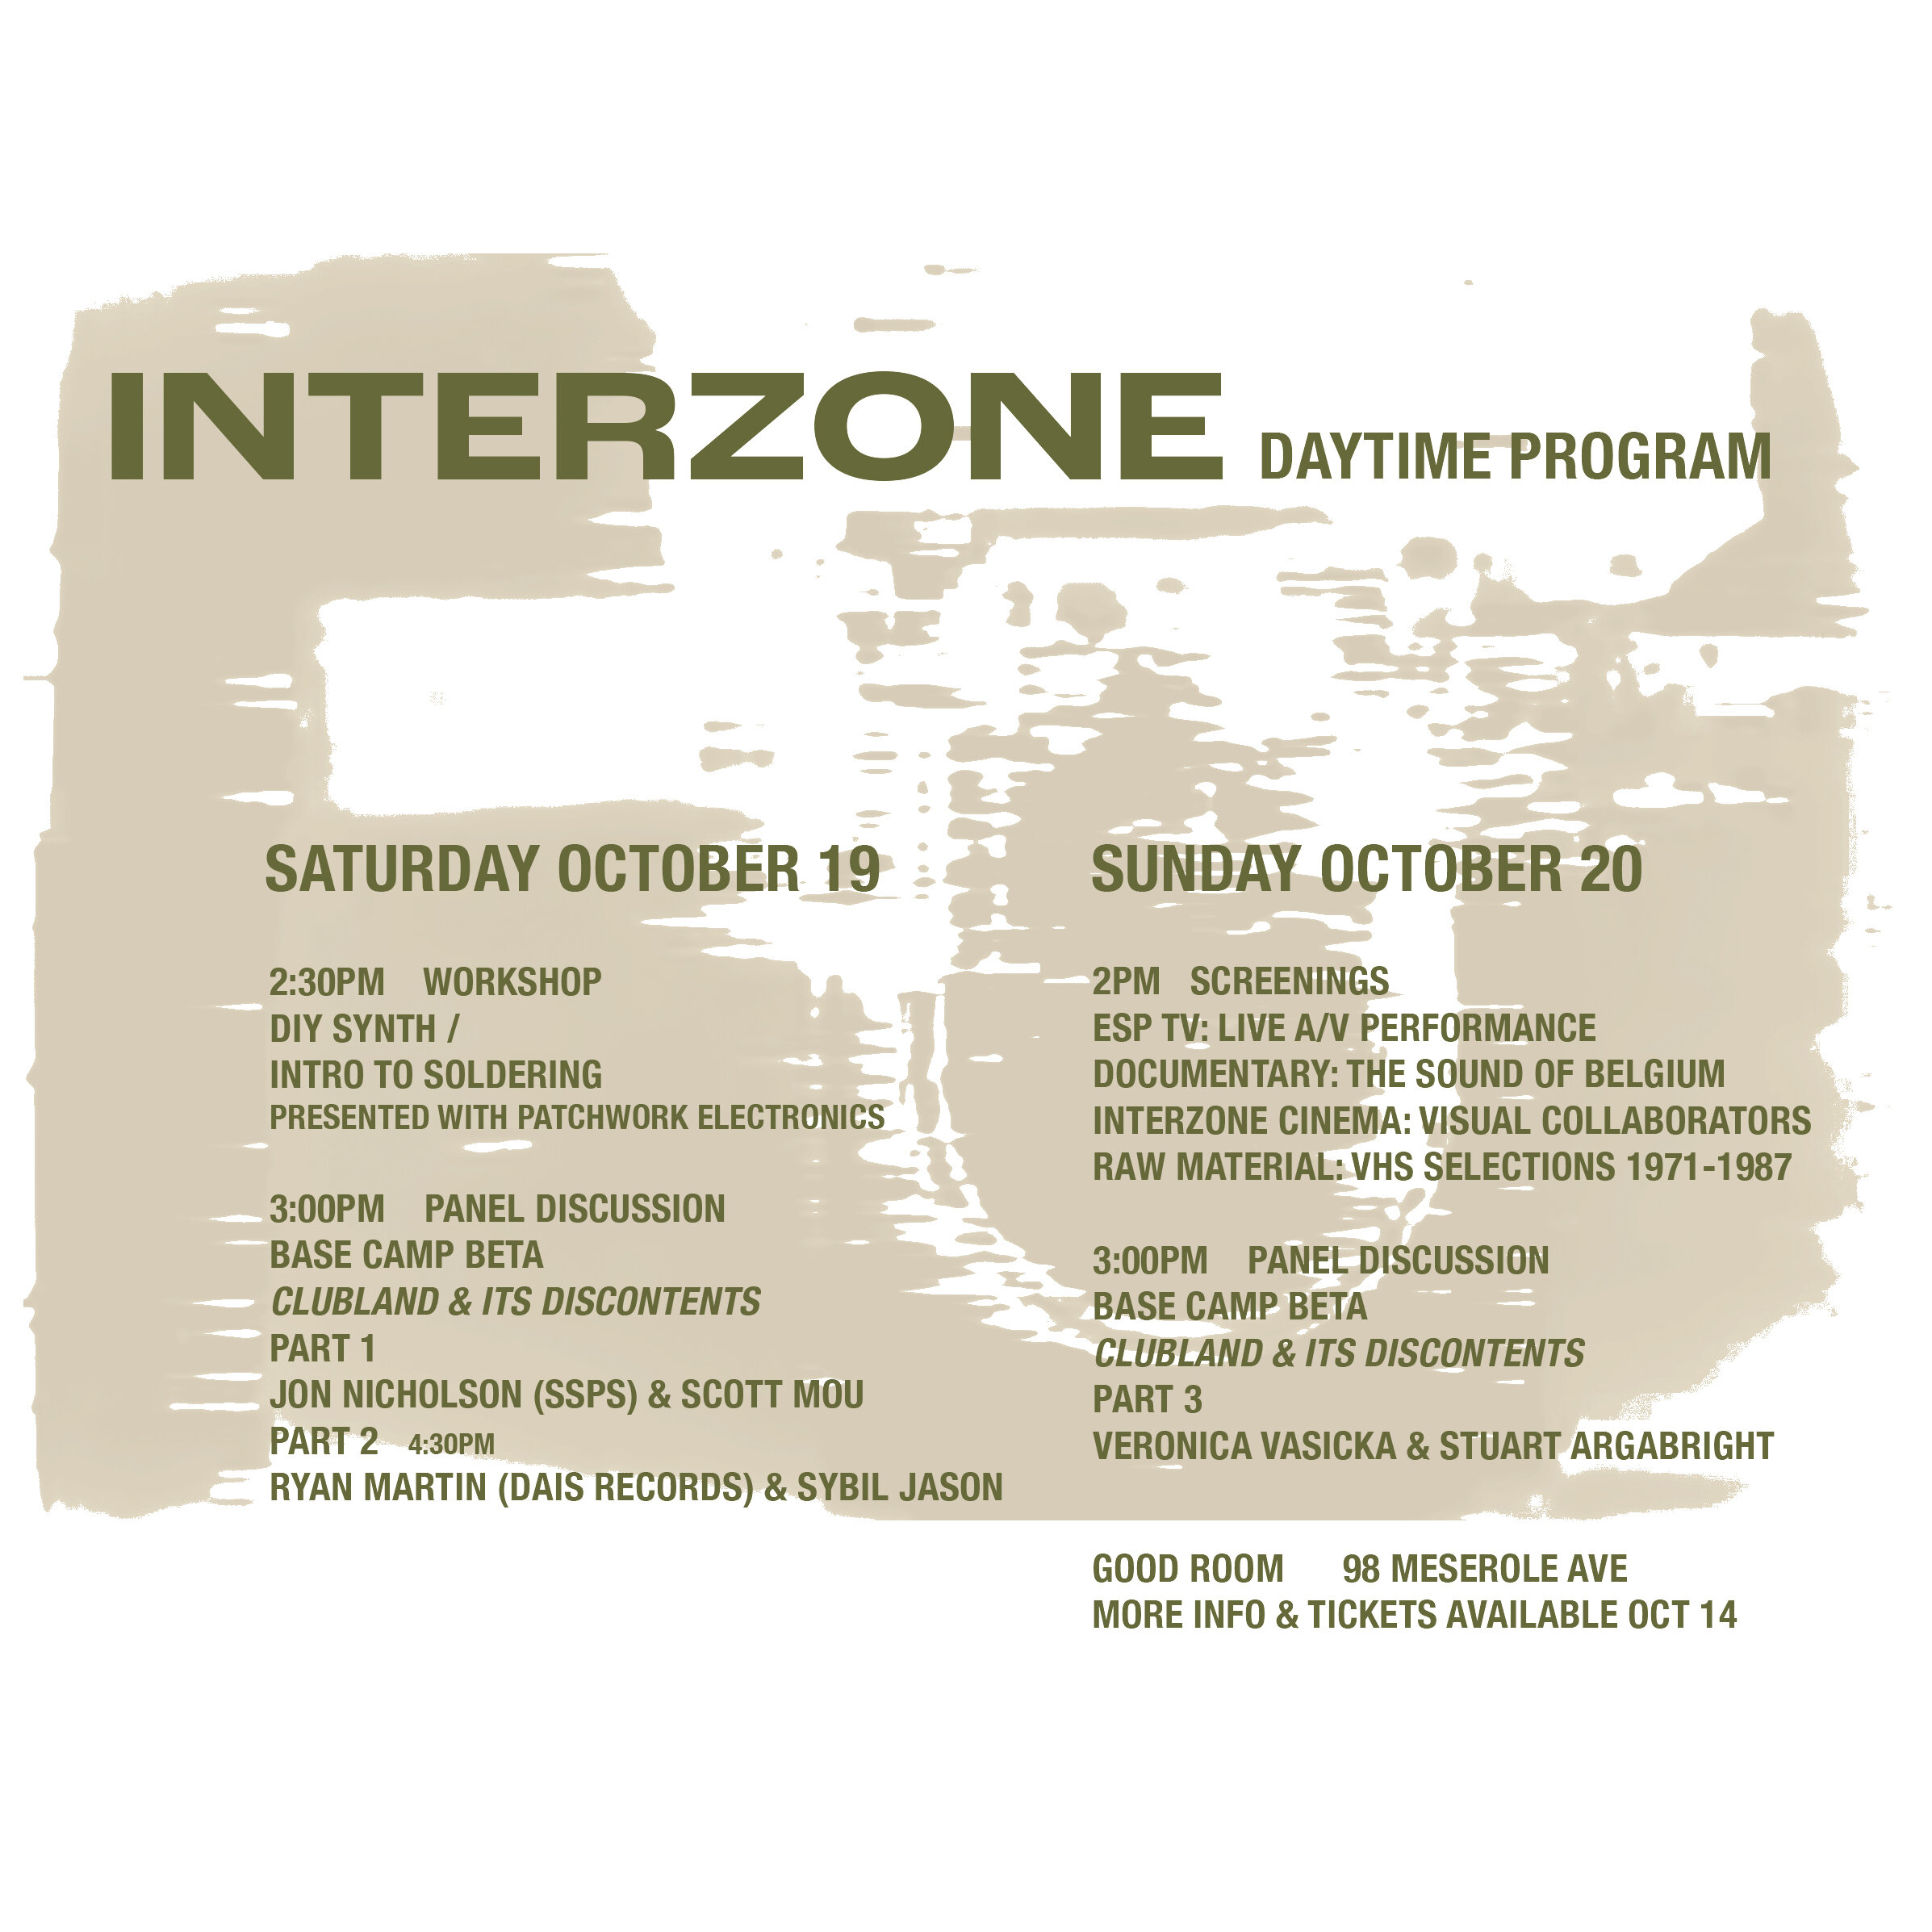 INTERZONE's day programming has arrived! Join us at our Good Room HQ throughout the weekend for documentary screenings, panel discussions and even a DIY synth building workshop all led by our favorite artists and friends. Everything is a $5 suggested donation, or free for pass holders, and open to all. The only exception is for the workshop, which has an extremely limited number of tickets on sale now — and a special discount for pass holders. There will also be Peter Pan donuts & coffee on Saturday! Tickets for the Build Your Own Synth workshop:  https://www.residentadvisor.net/events/1332768  More info on the other events can be found at:  http://www.residentadvisor.net/to/INTERZONE